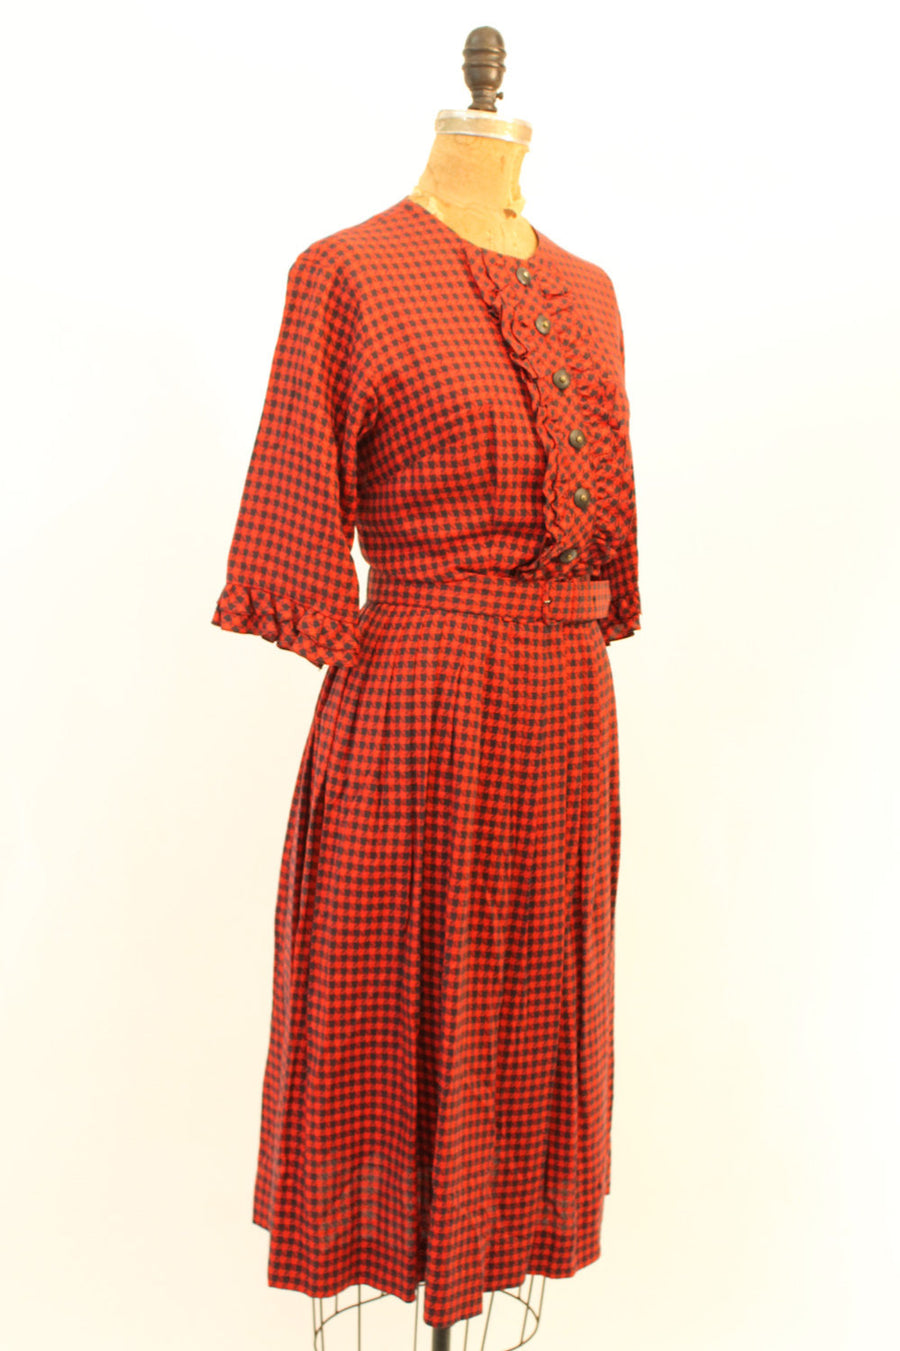 1950s plaid cotton dress | vintage Toni Todd ruffle bib dress